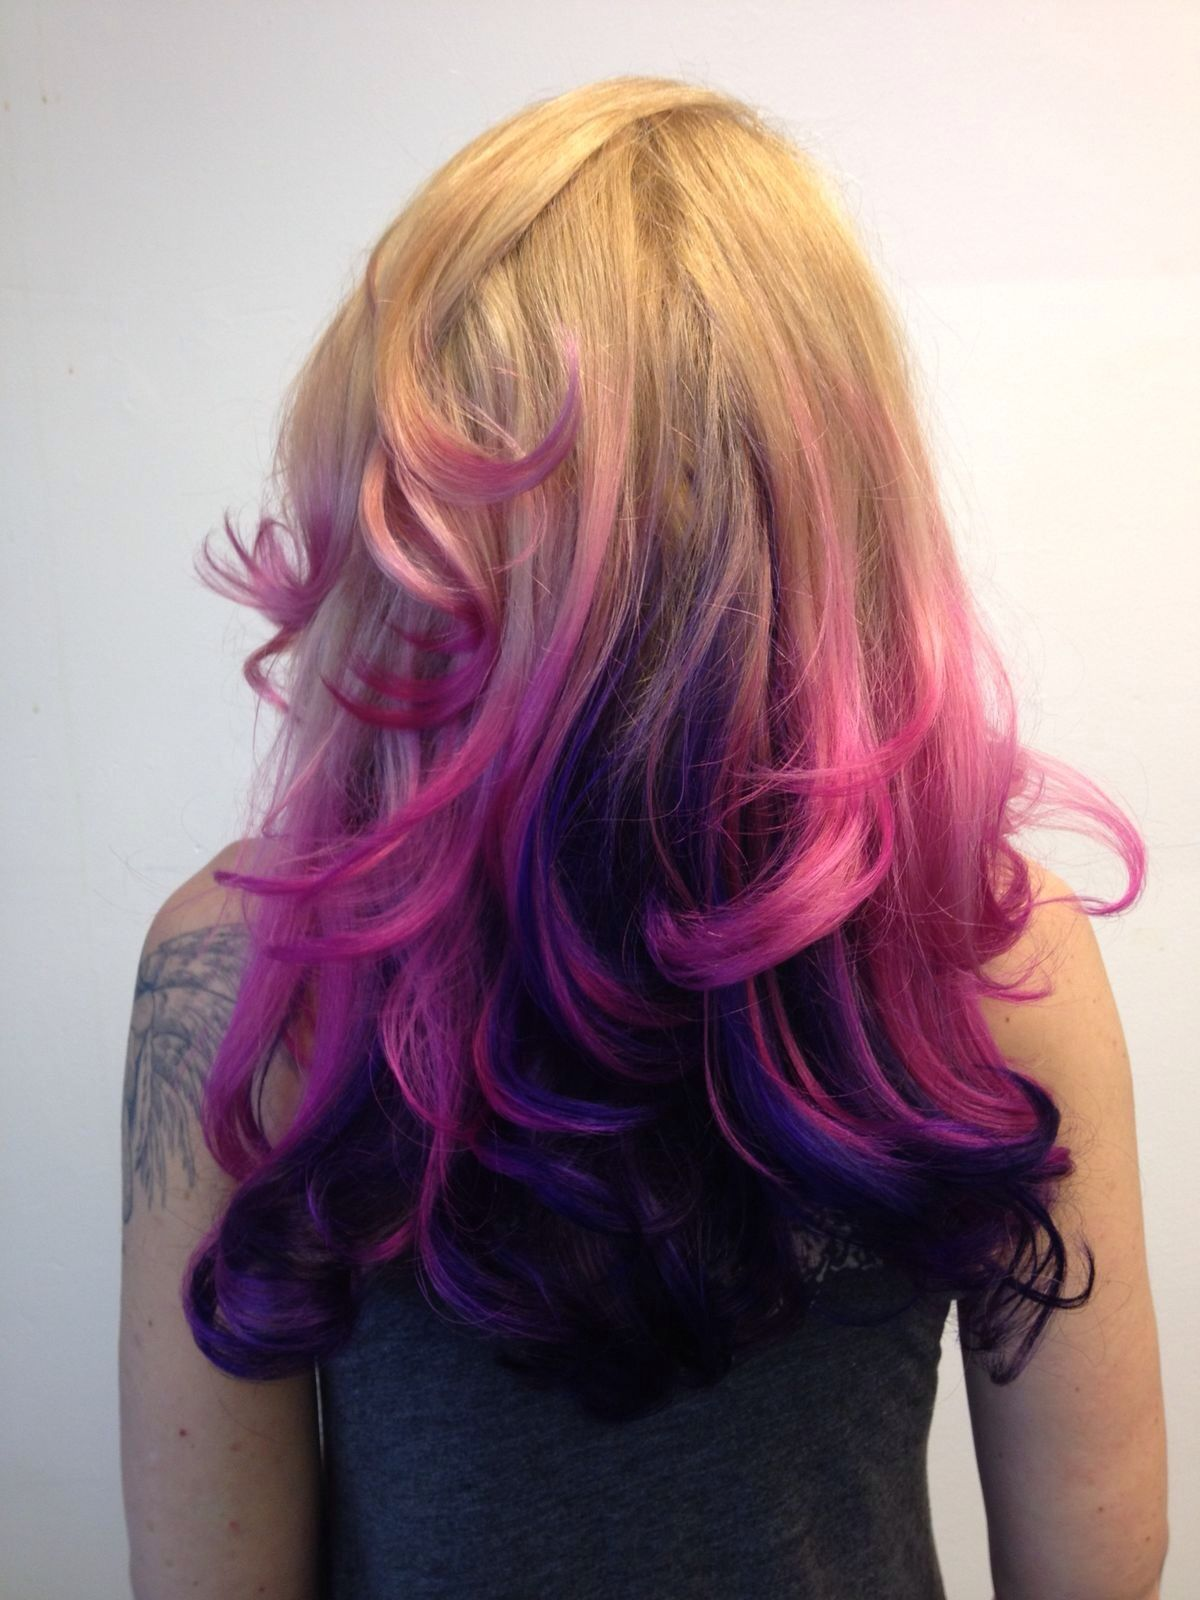 Behind The Chair Ombre Hair Hairchalk Trend Lorealprofessionnel Malenashot